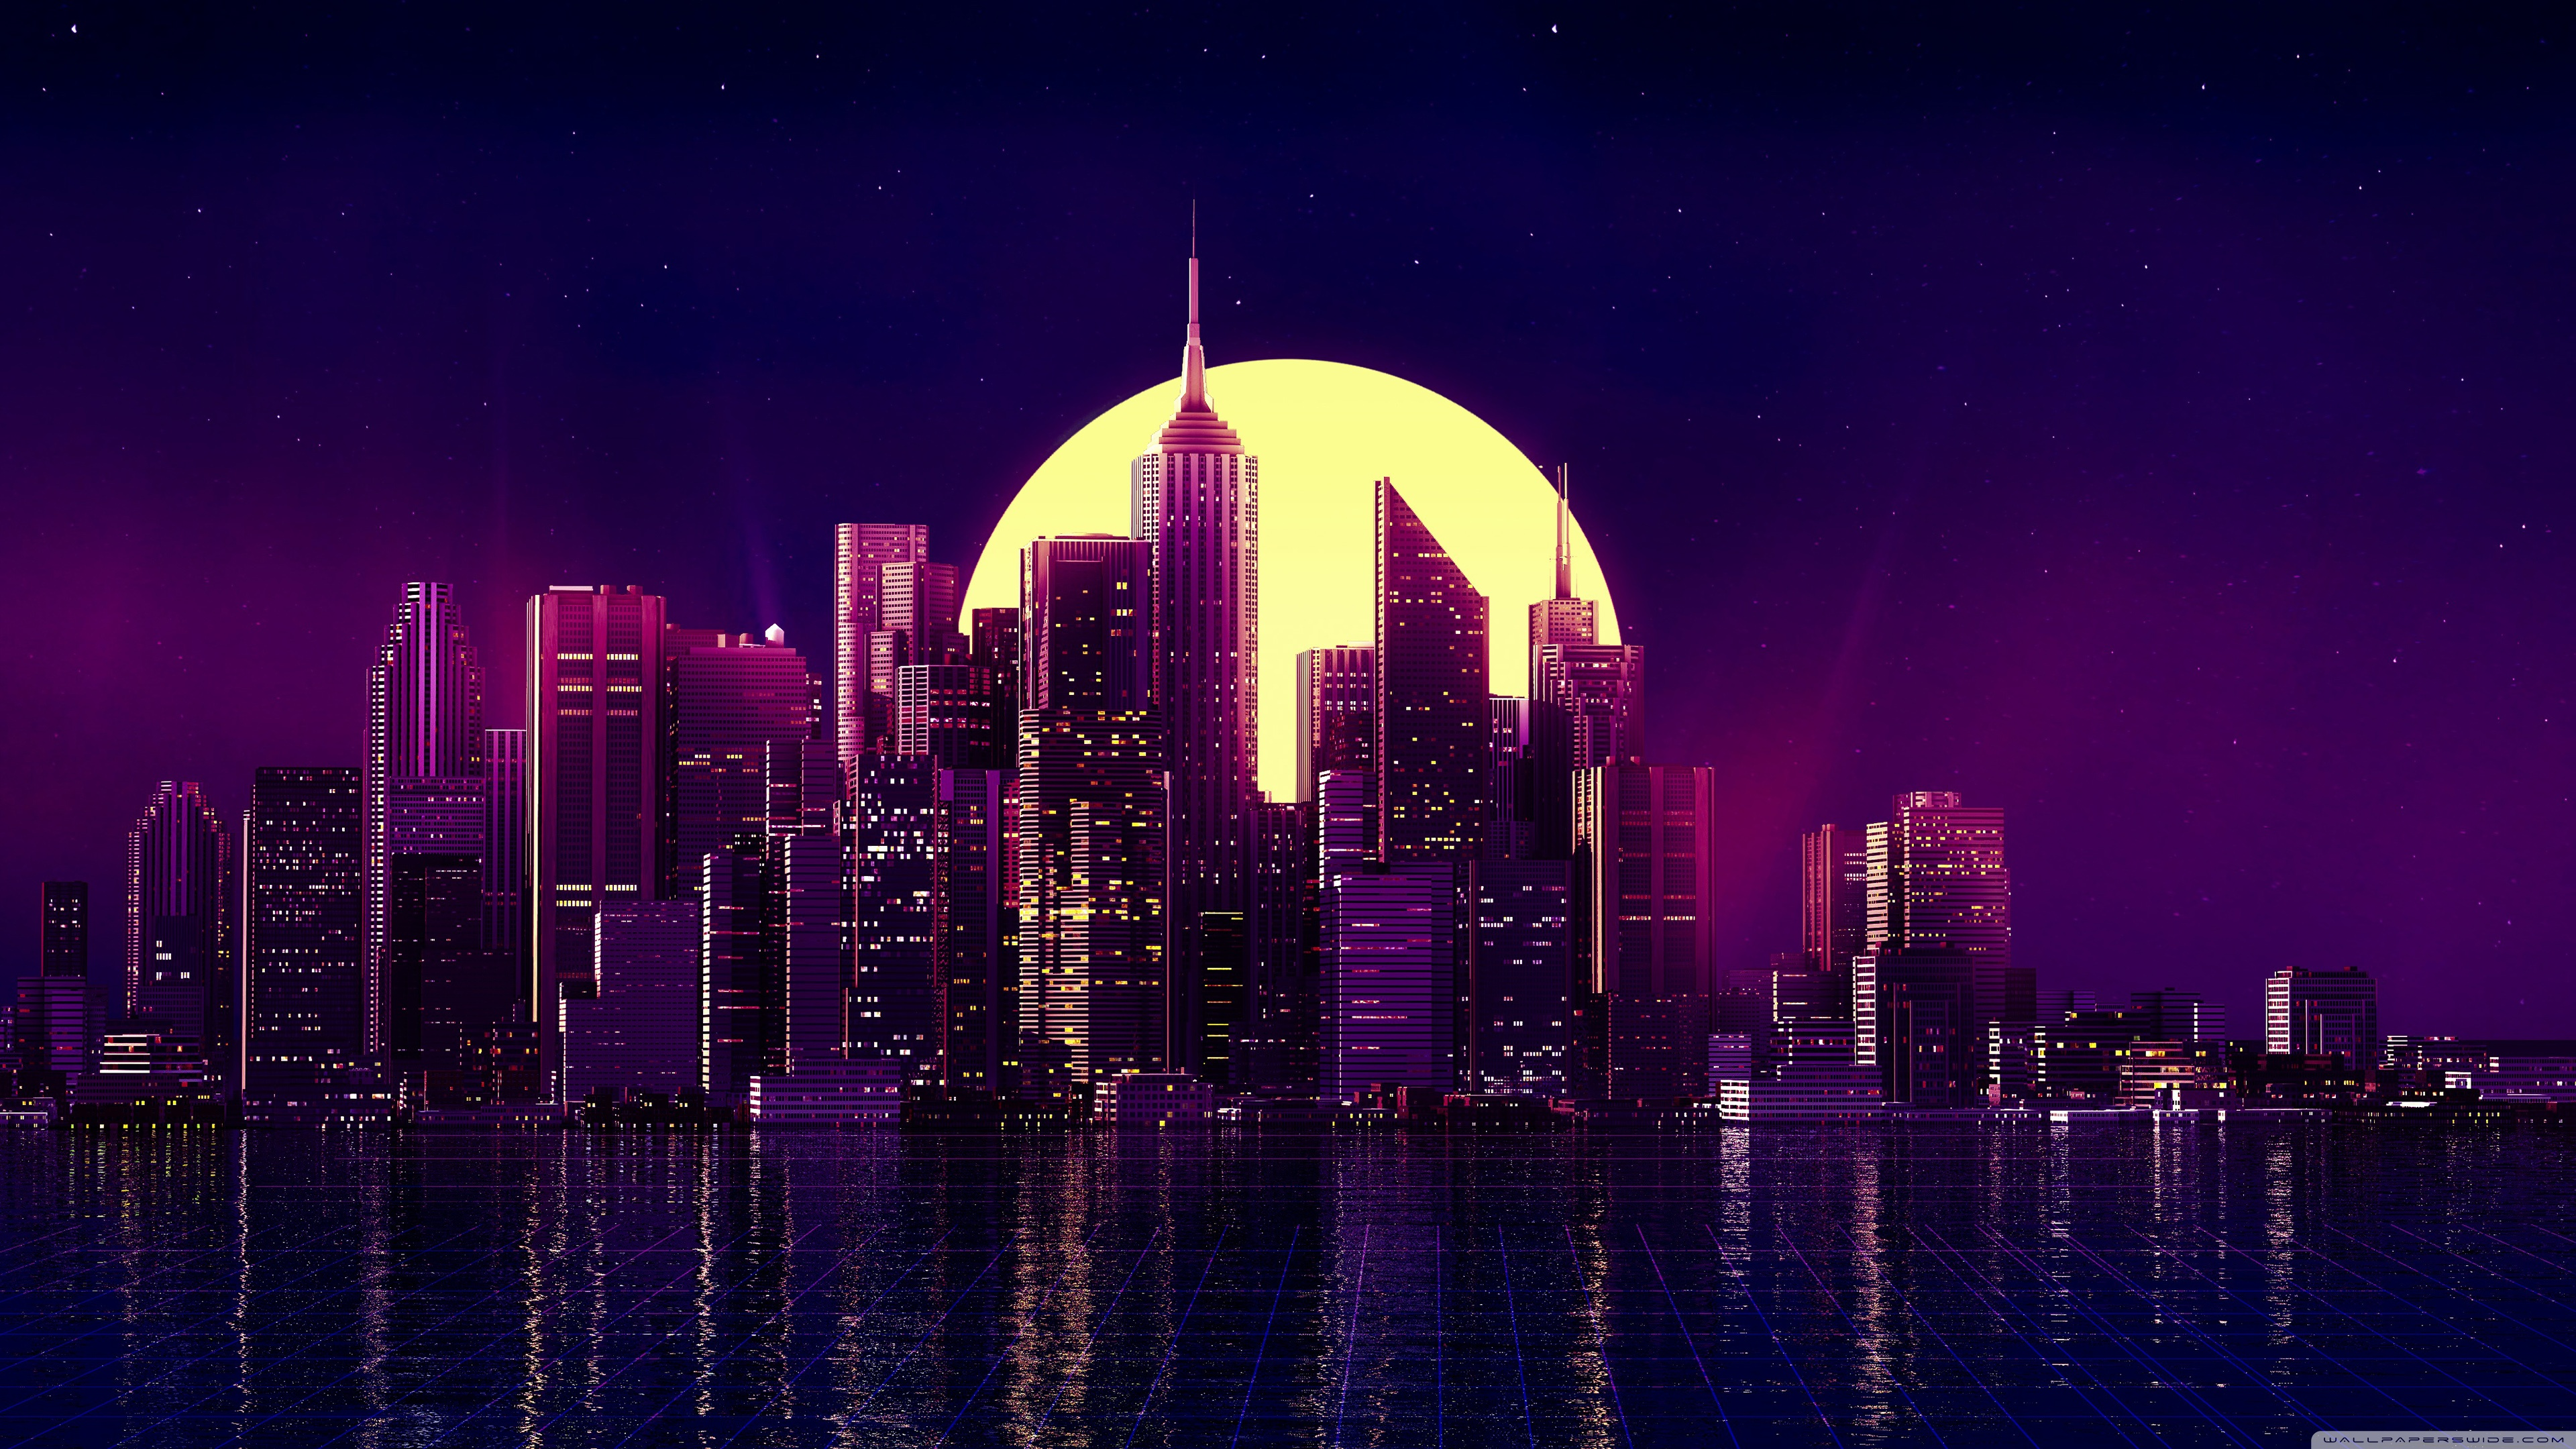 Bright Moon City 4k Wallpaper